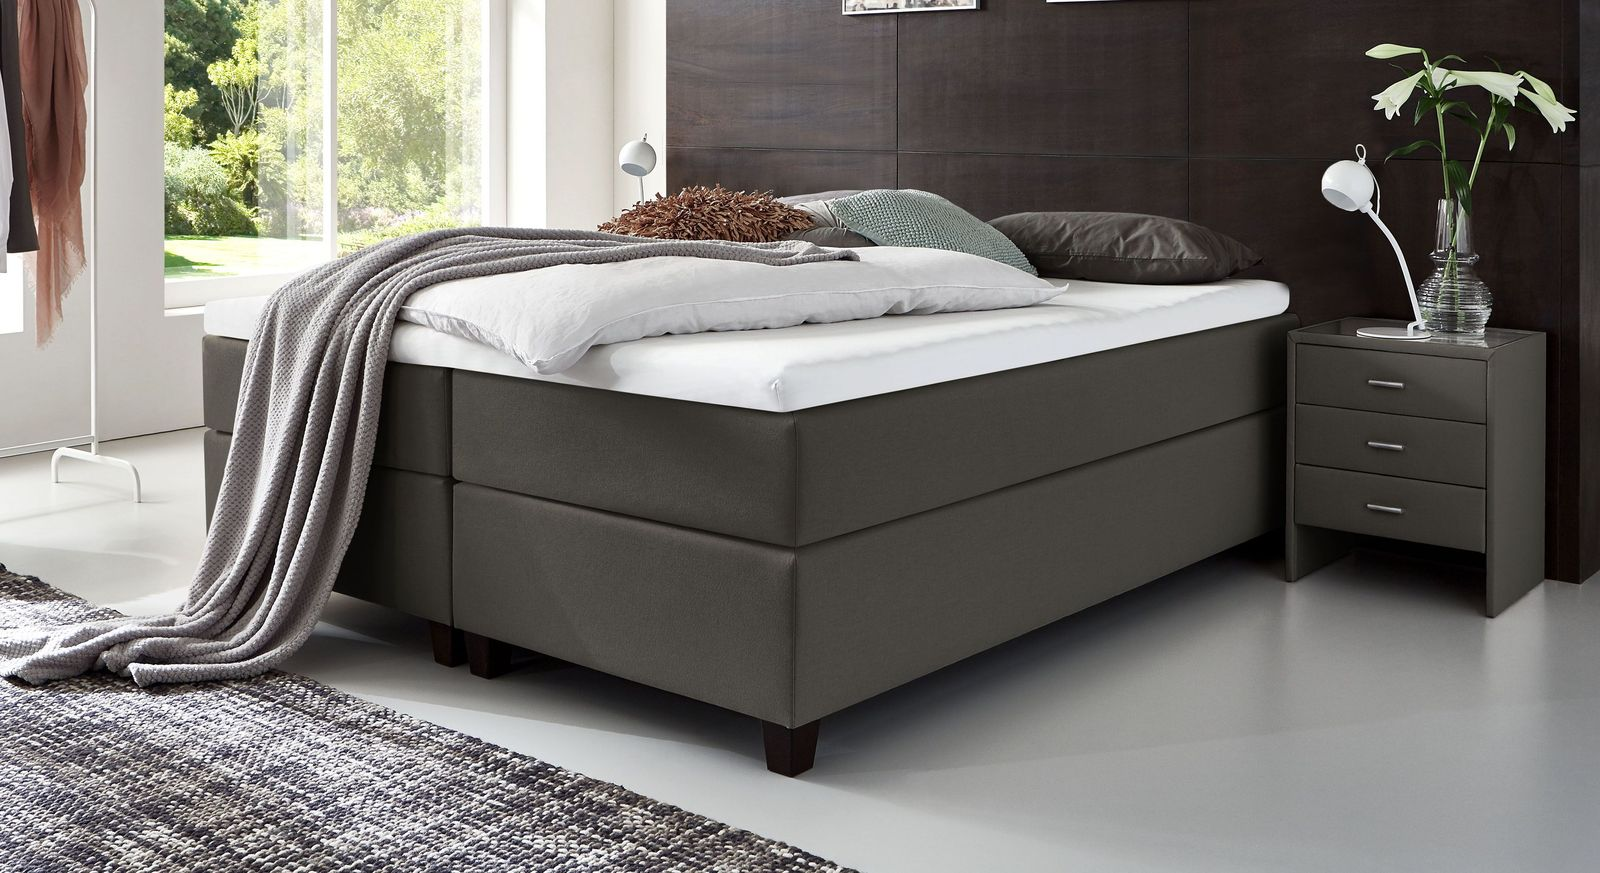 66 cm hohe Boxspringliege Luciano aus Webstoff in Anthrazit